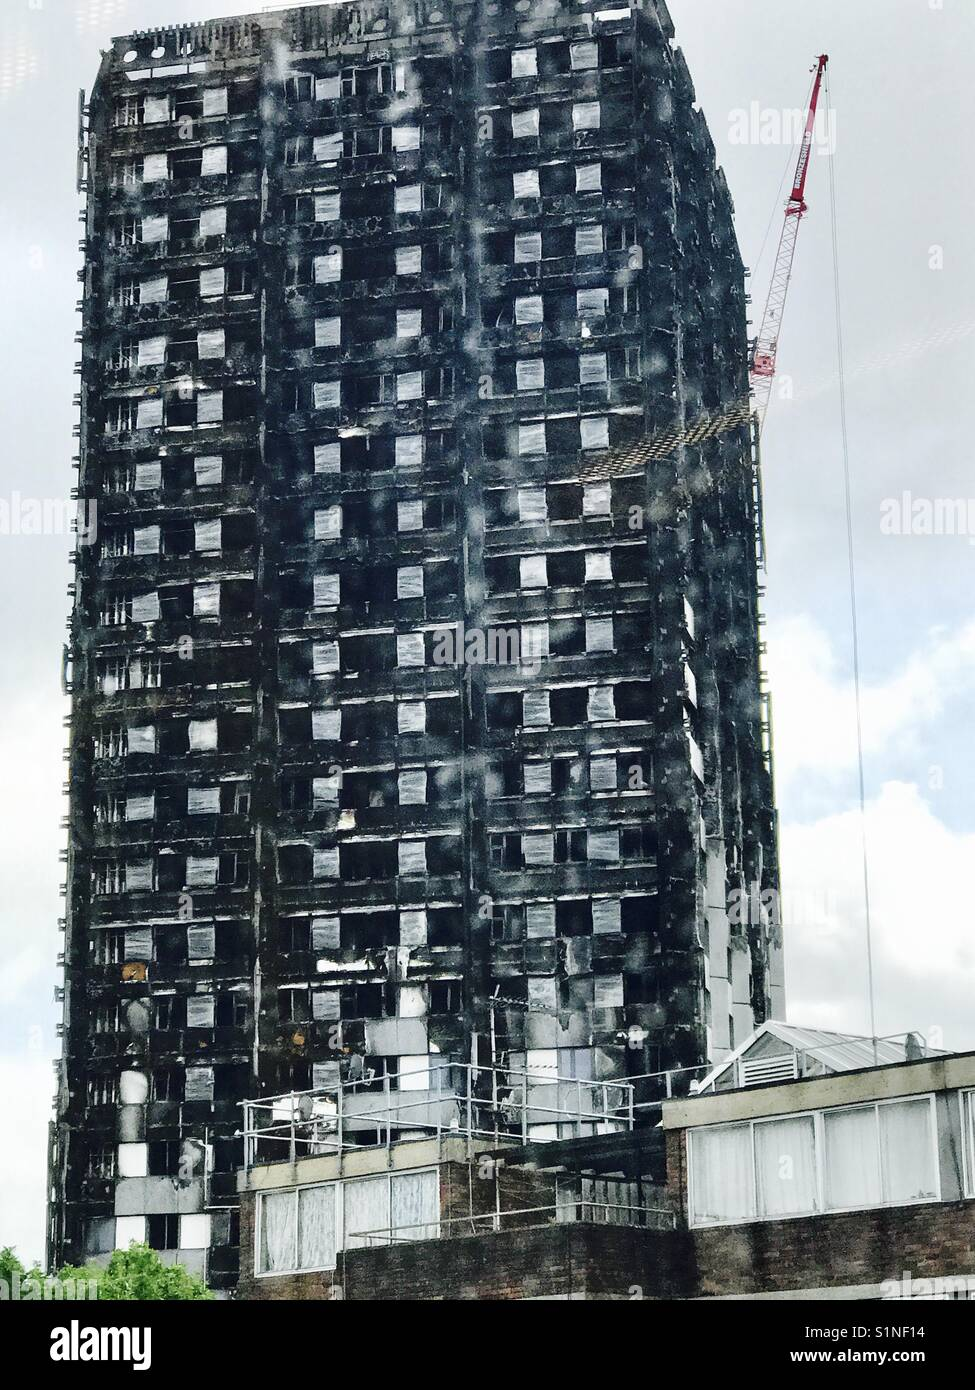 Grenfell Tower two months after the fire the charred edifice - Stock Image